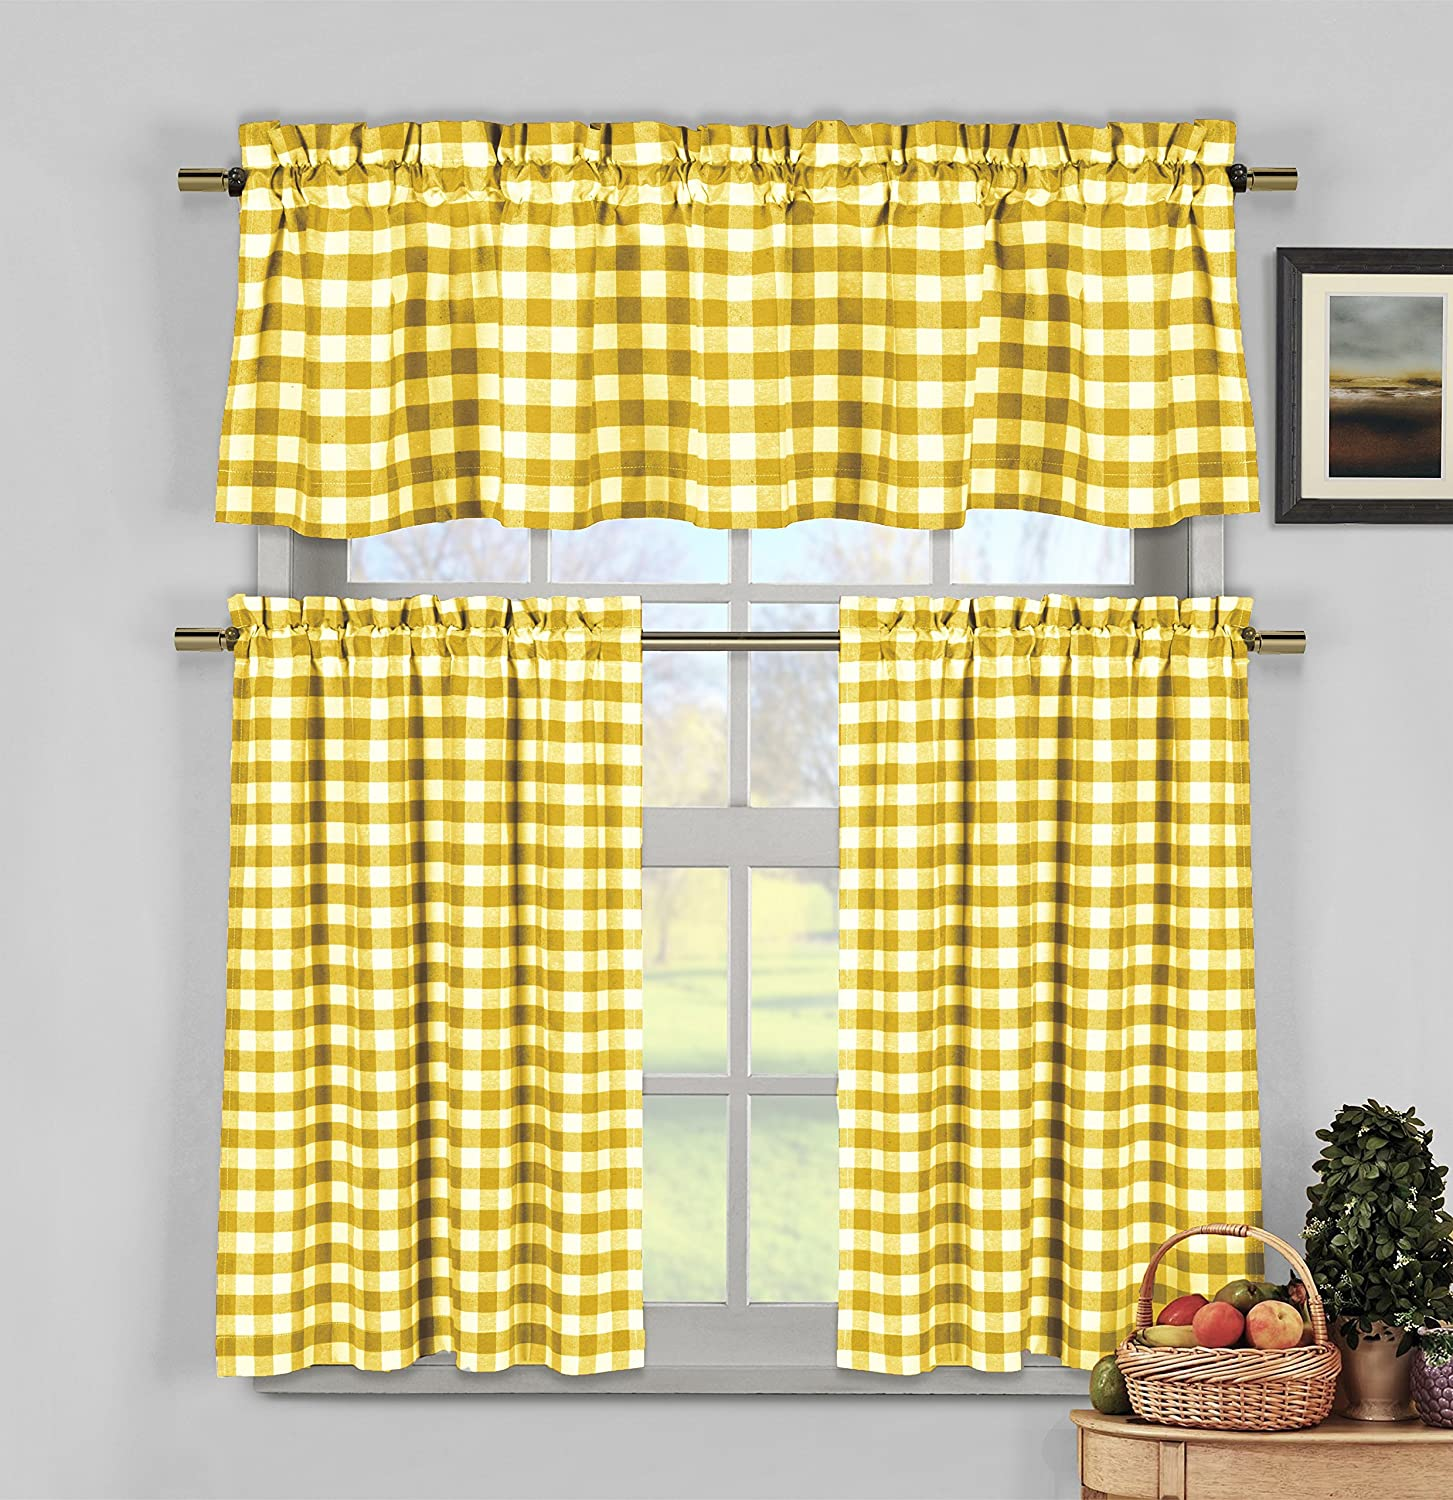 Exceptionnel Amazon.com: 3 Piece Plaid, Checkered, Gingham 35% Cotton Kitchen Curtain  Set With 1 Valance And 2 Tier Panels (Yellow): Home U0026 Kitchen